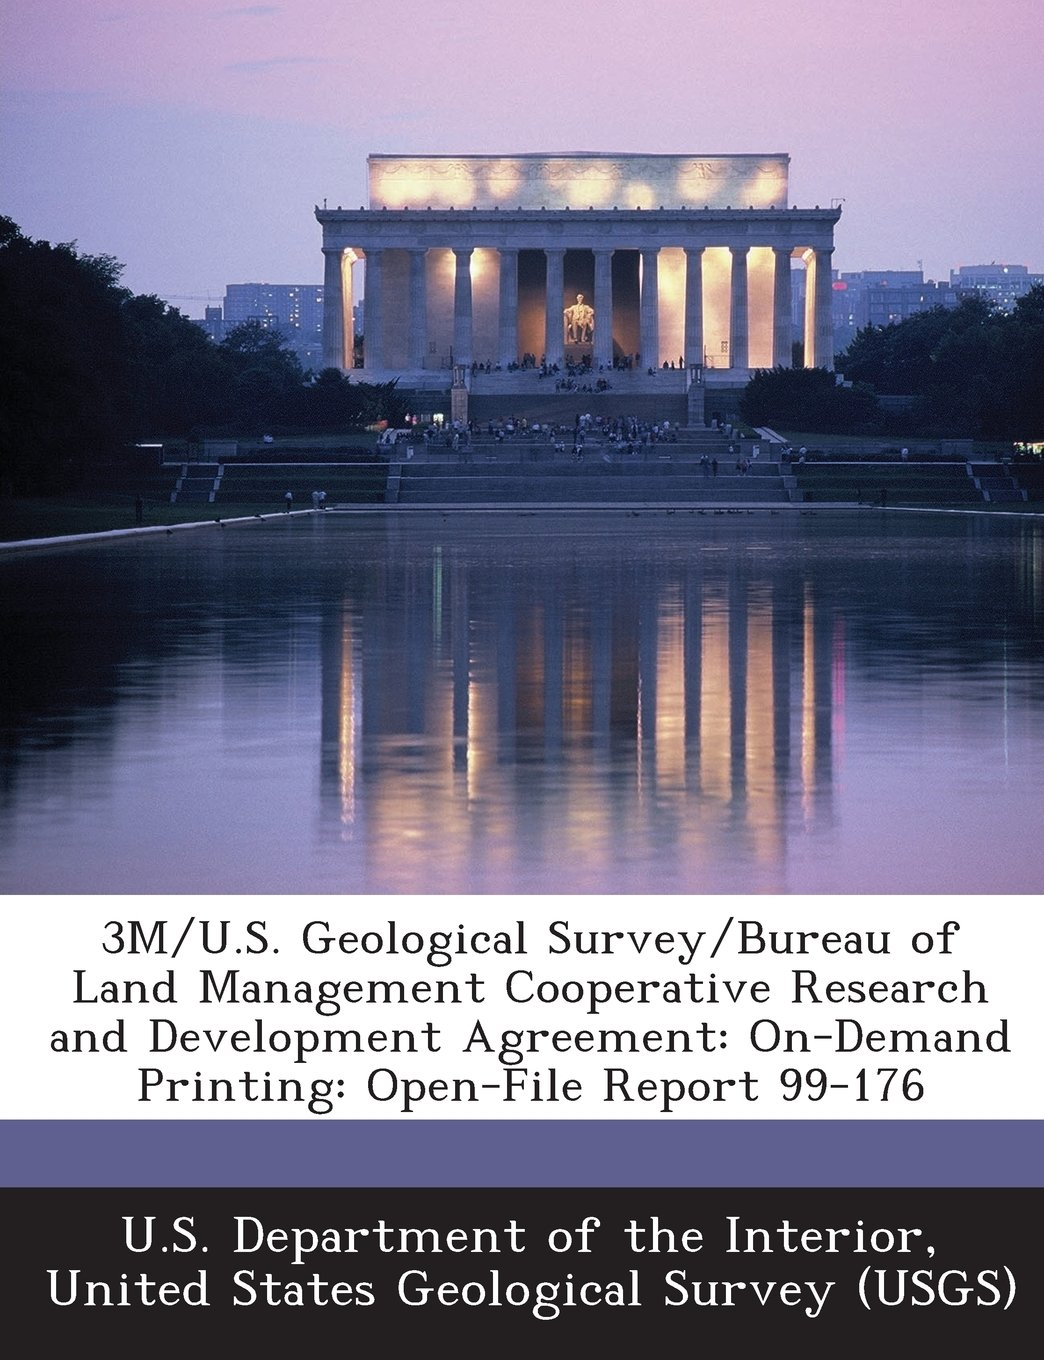 3M/U.S. Geological Survey/Bureau of Land Management Cooperative Research and Development Agreement: On-Demand Printing: Open-File Report 99-176 pdf